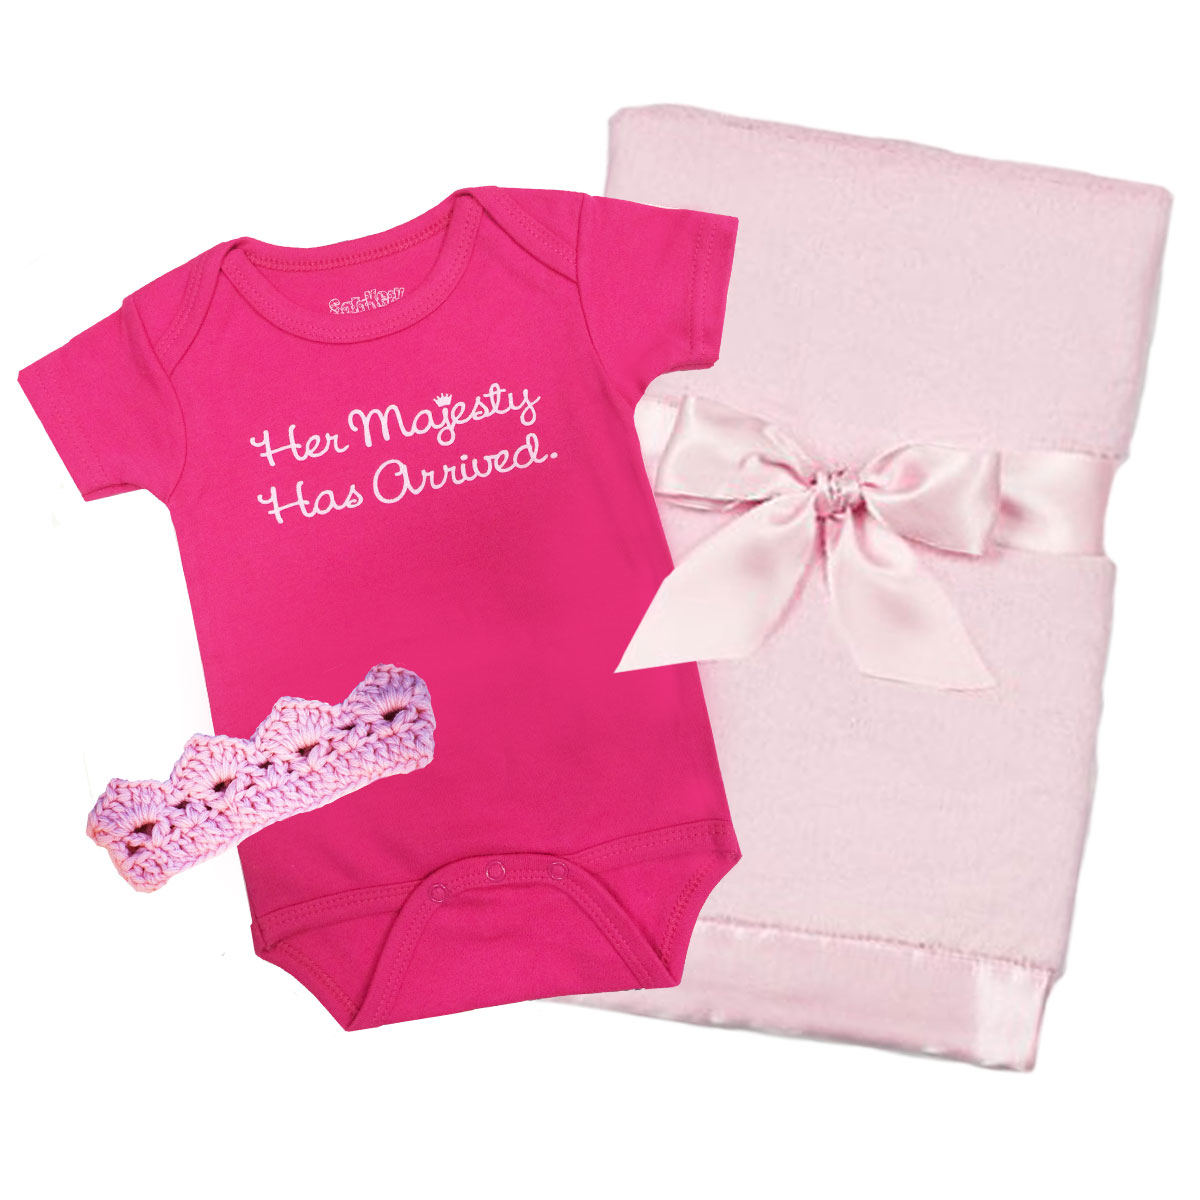 Her Majesty Onesie Crown and Blanket Gift Set